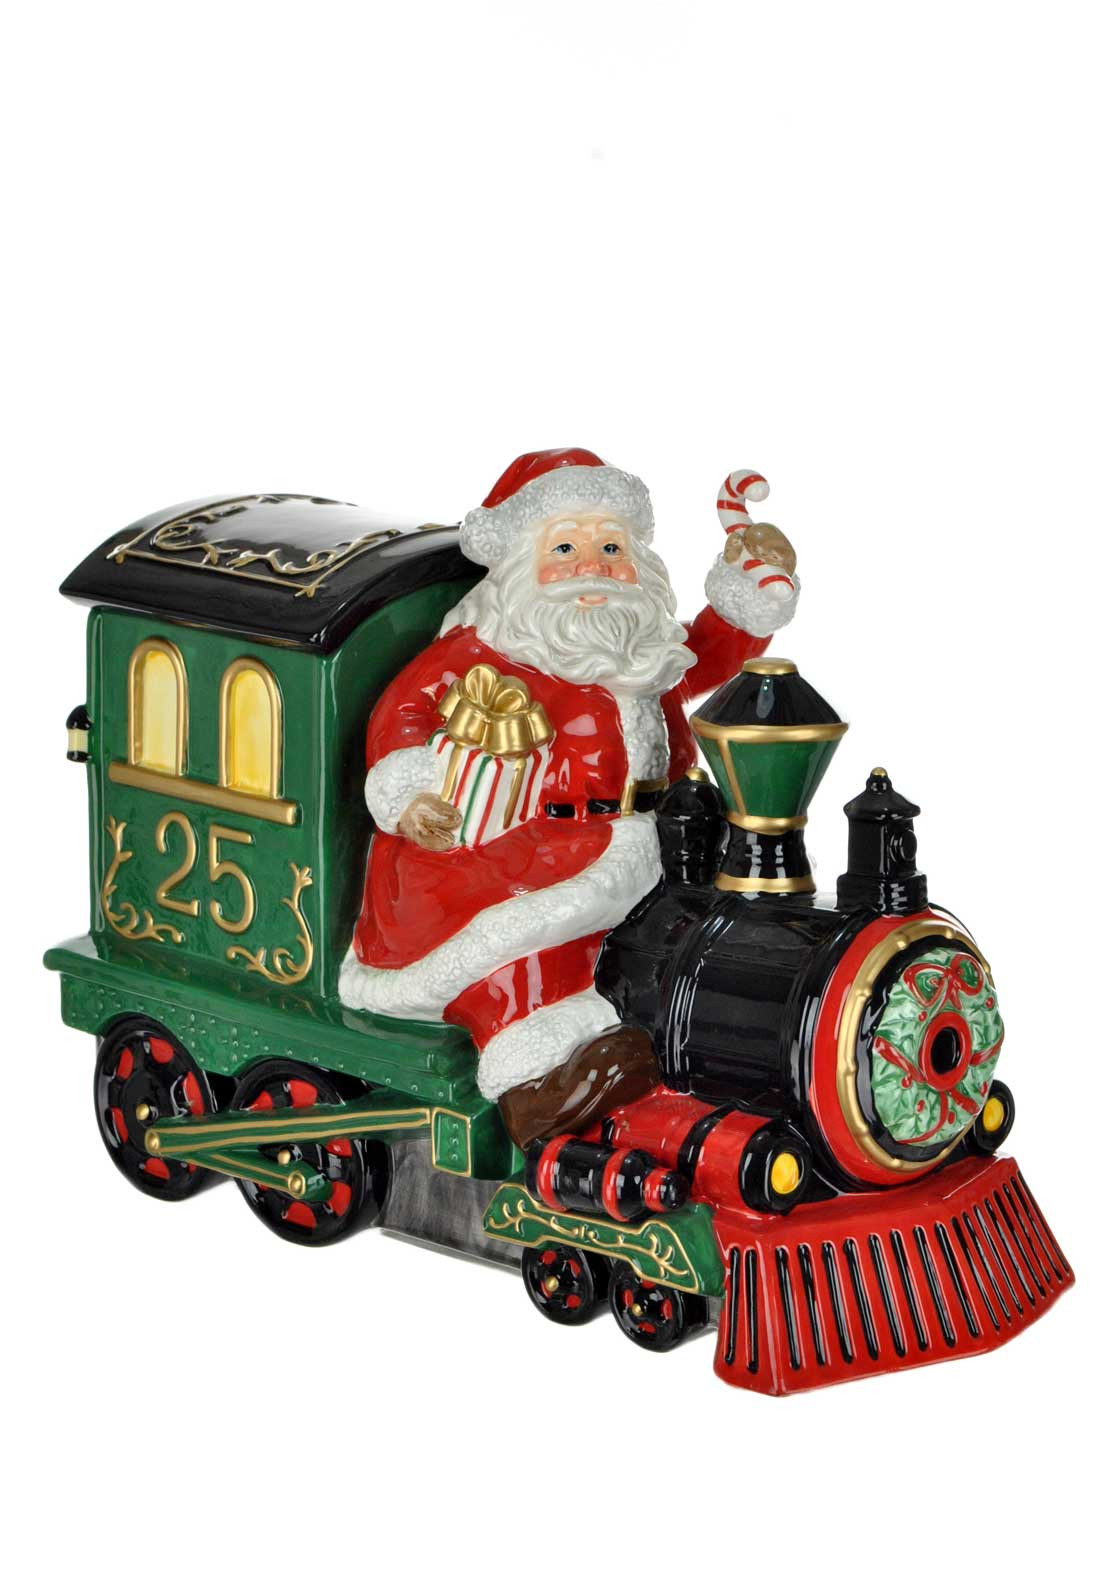 Waterford Crystal Heirloom Cookie Jar Santa on a Train Ornament